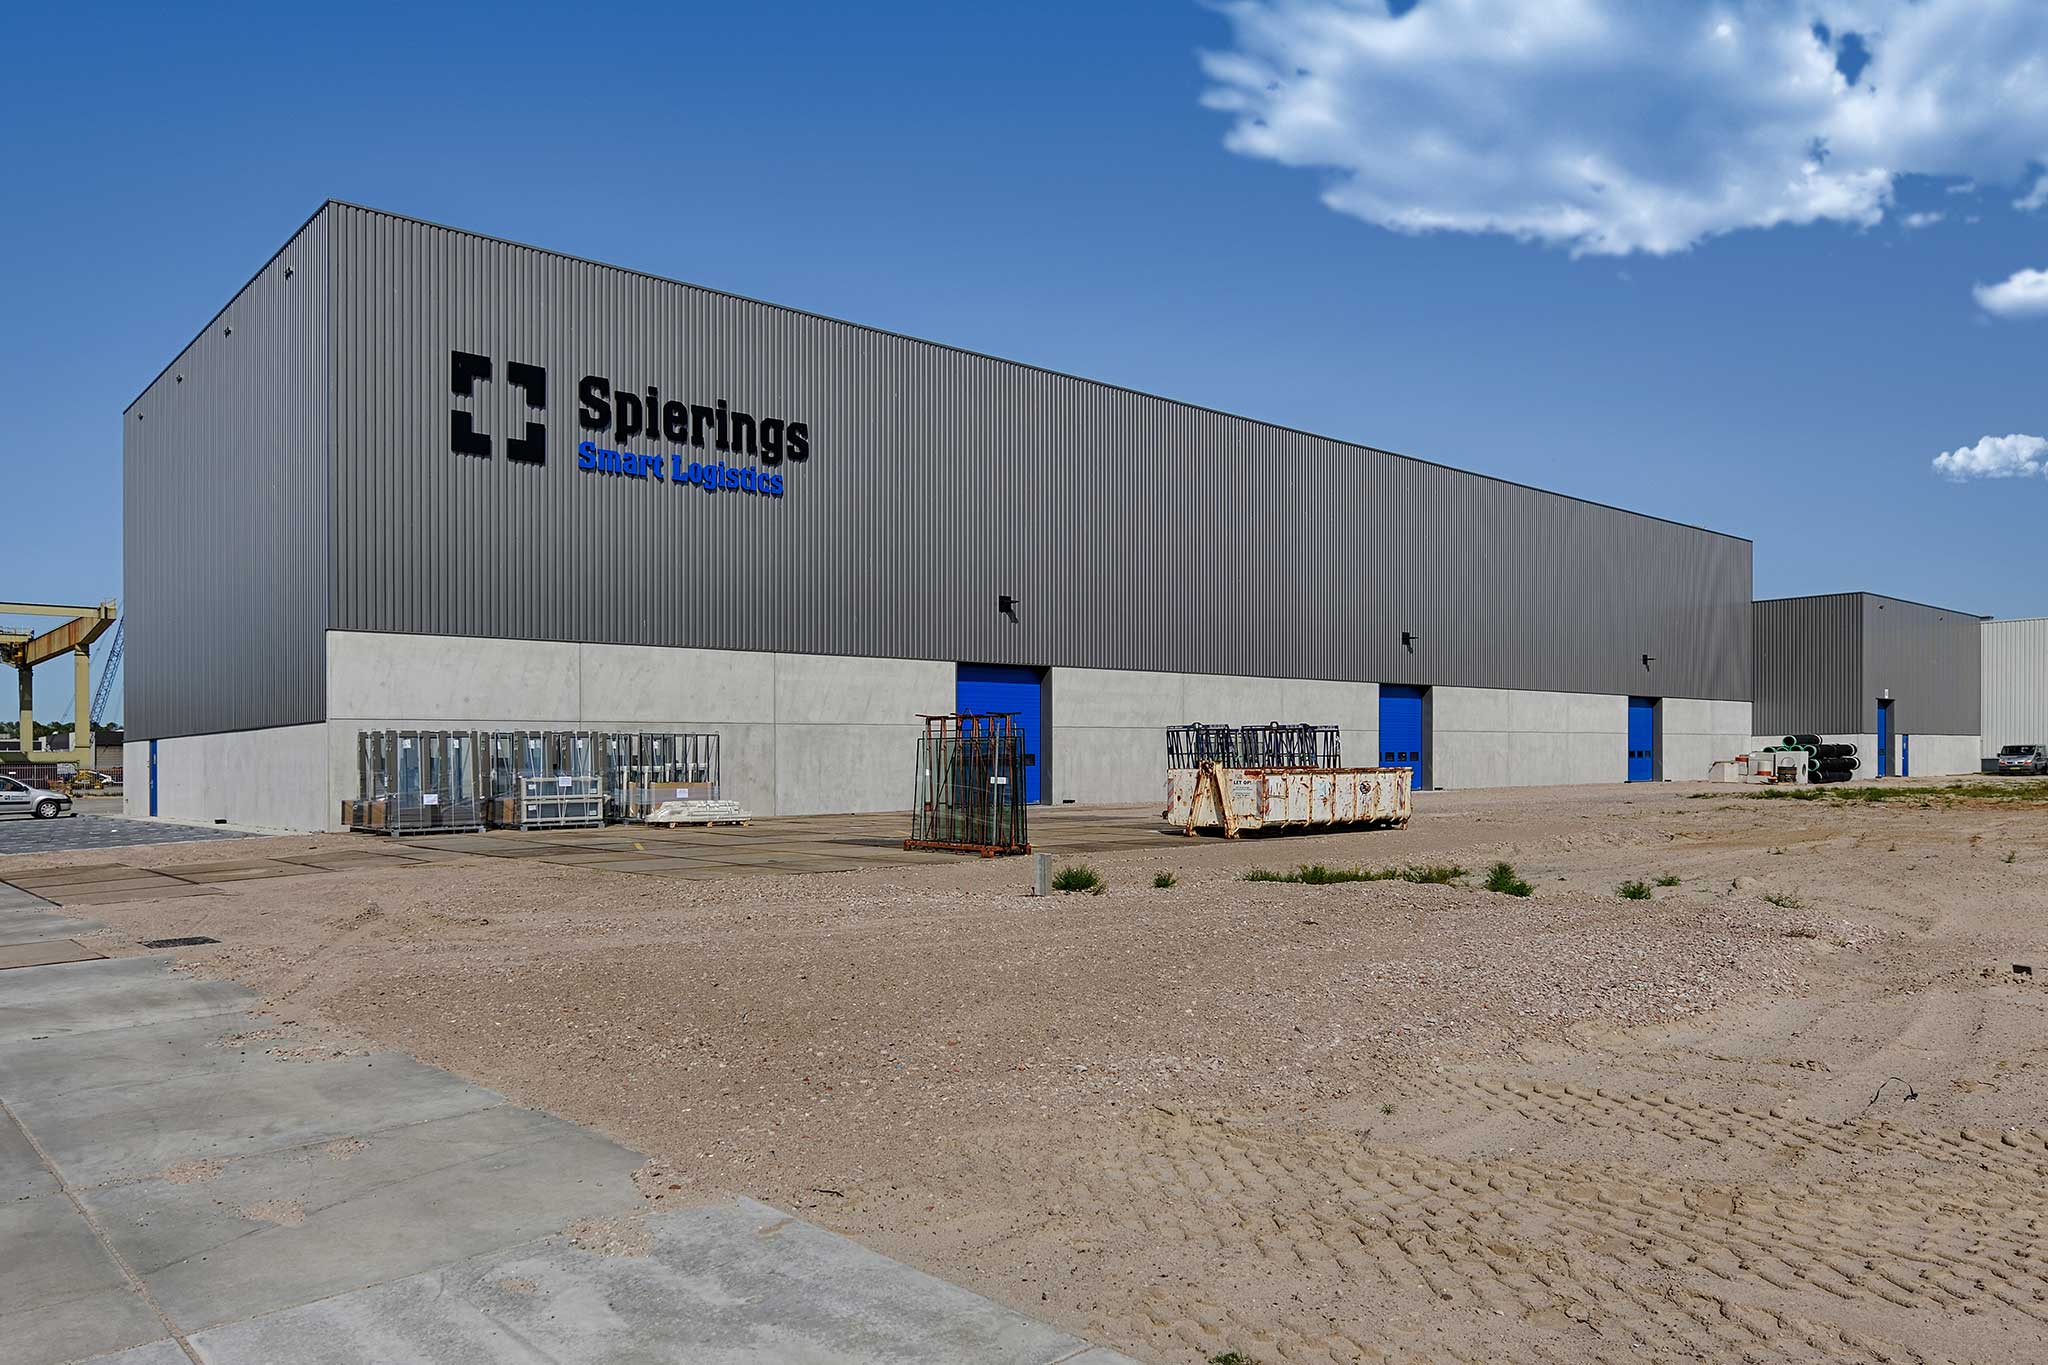 Spierings Smart Logistics